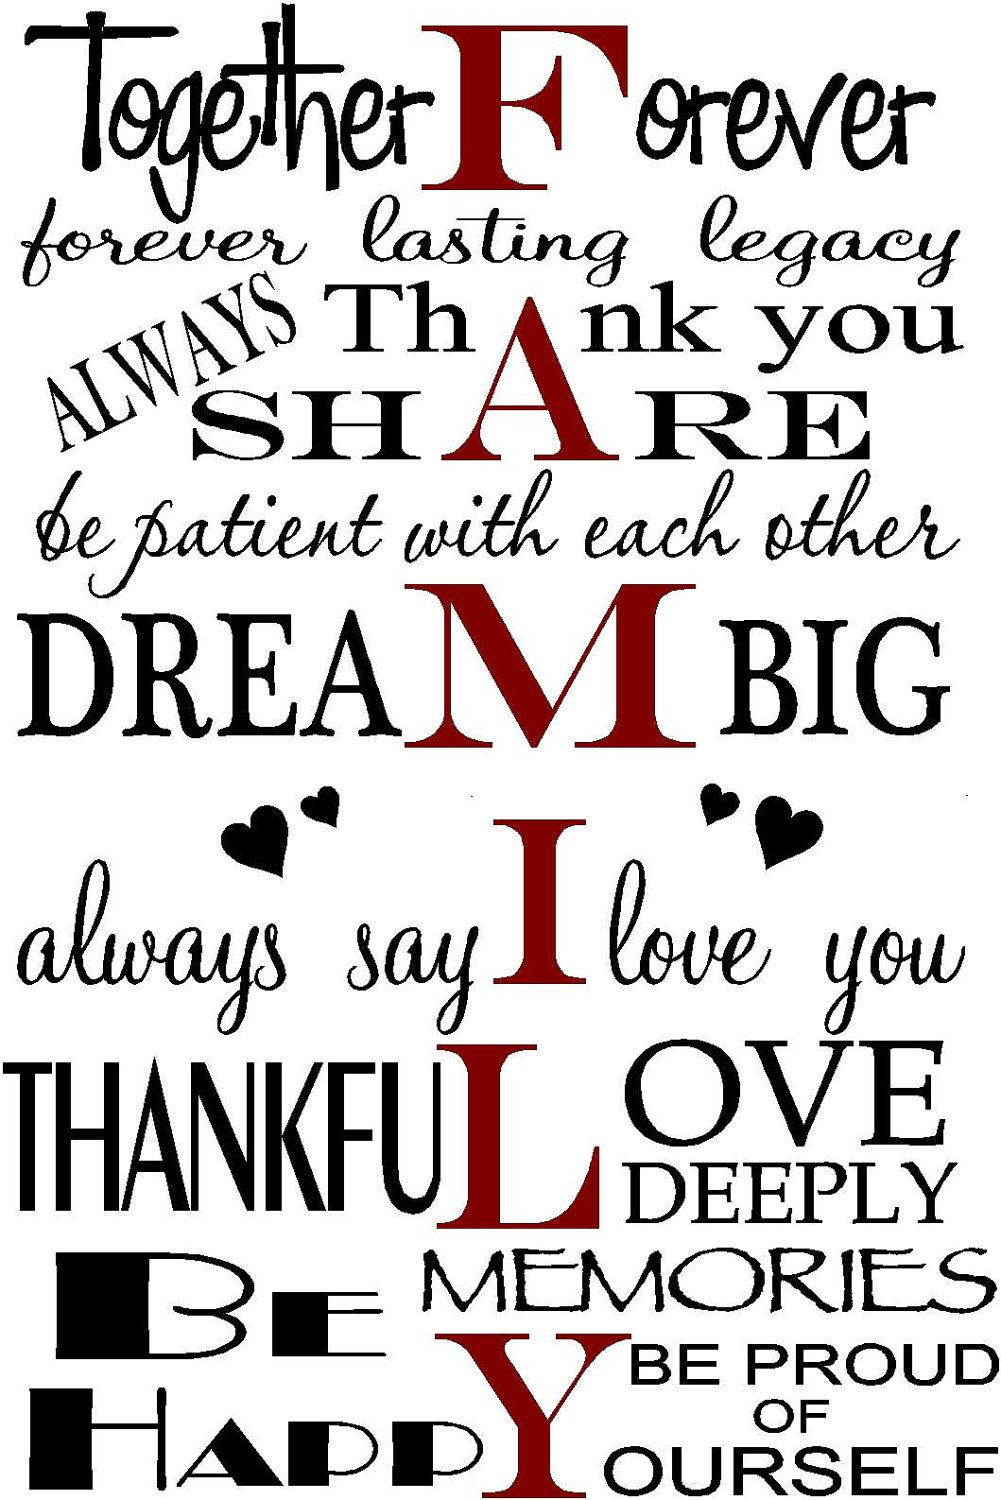 Quotes About Family Quotes Funny Quotes About Family About Life Love Birthday Sayings Family Love Quotes Family Quotes Funny Family Quotes